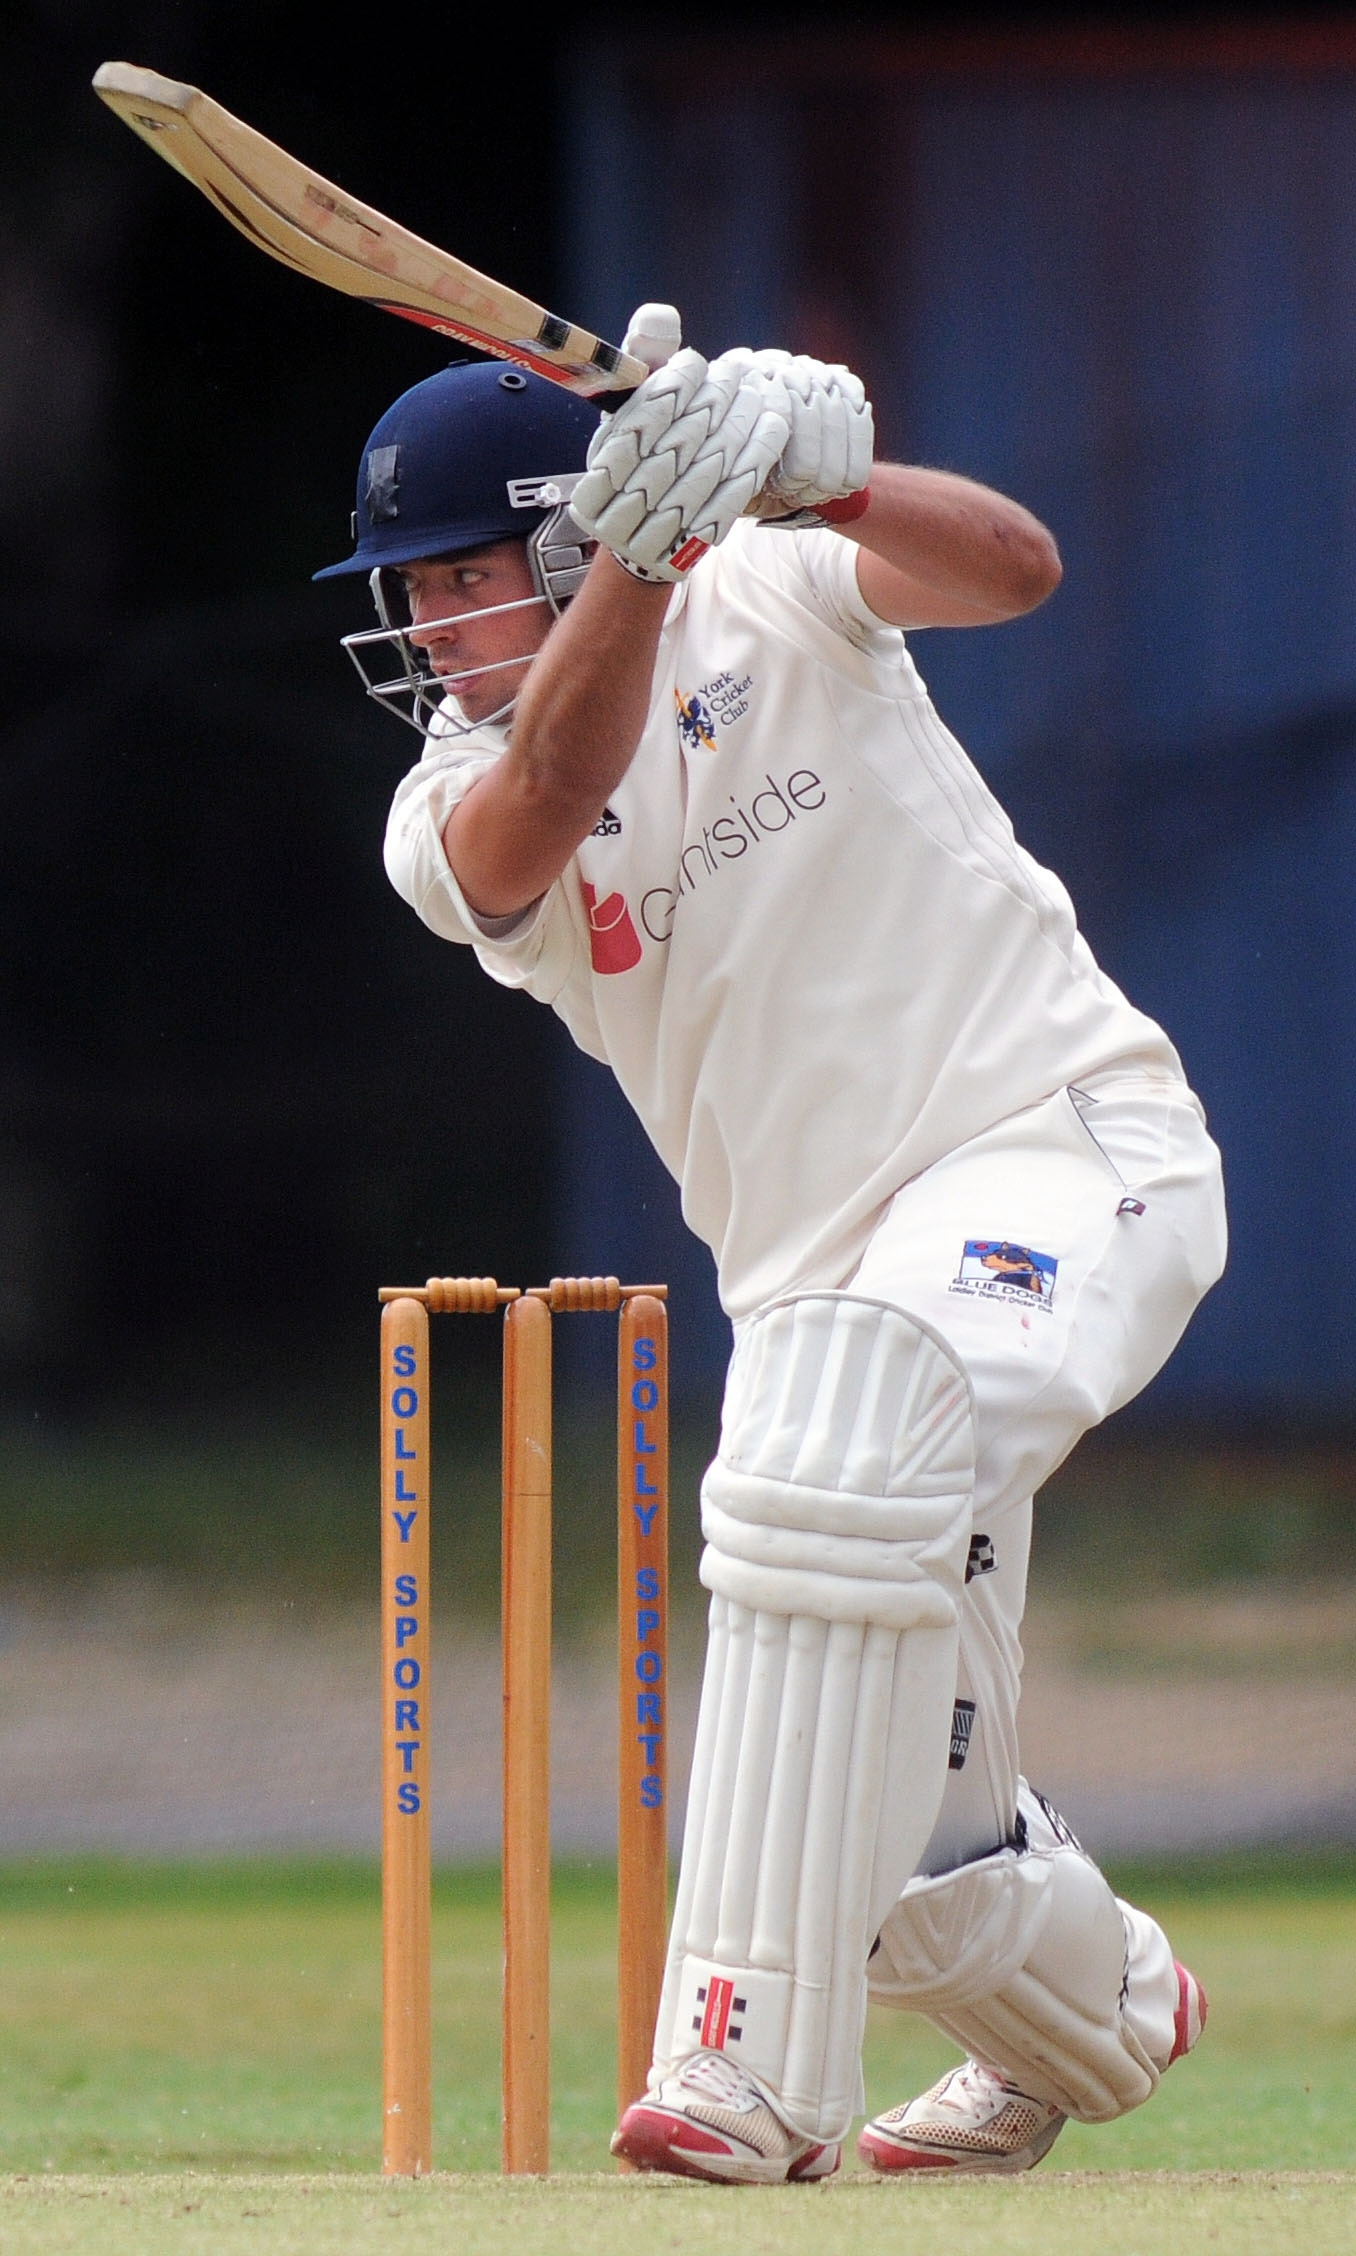 York opener Jack Leaning, who cracked an unbeaten century at Scarborough